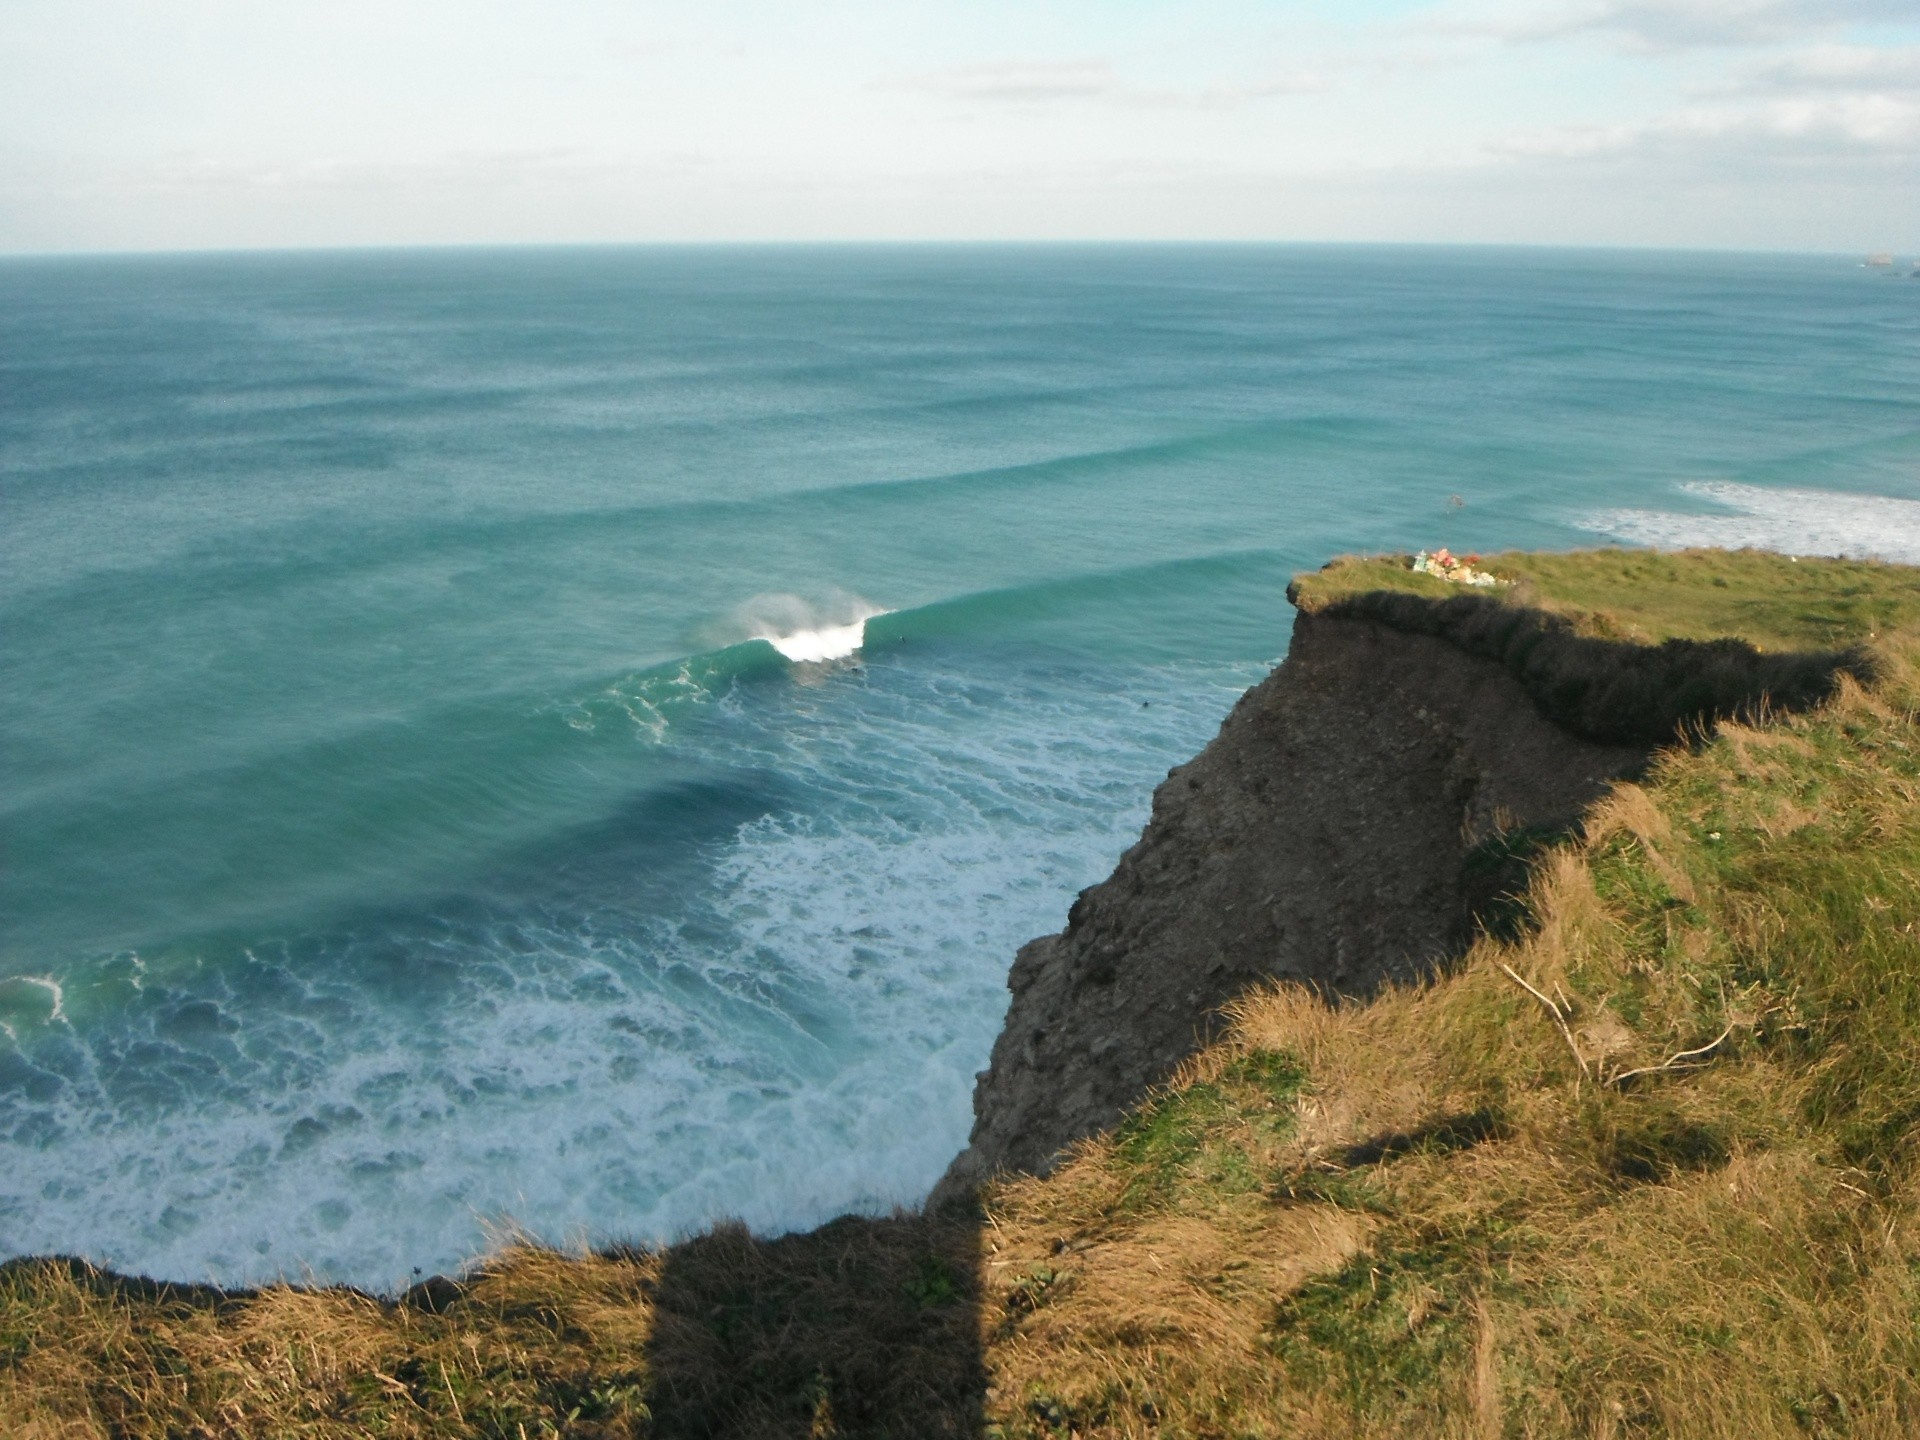 Richie Keedwell's photo of Porthtowan